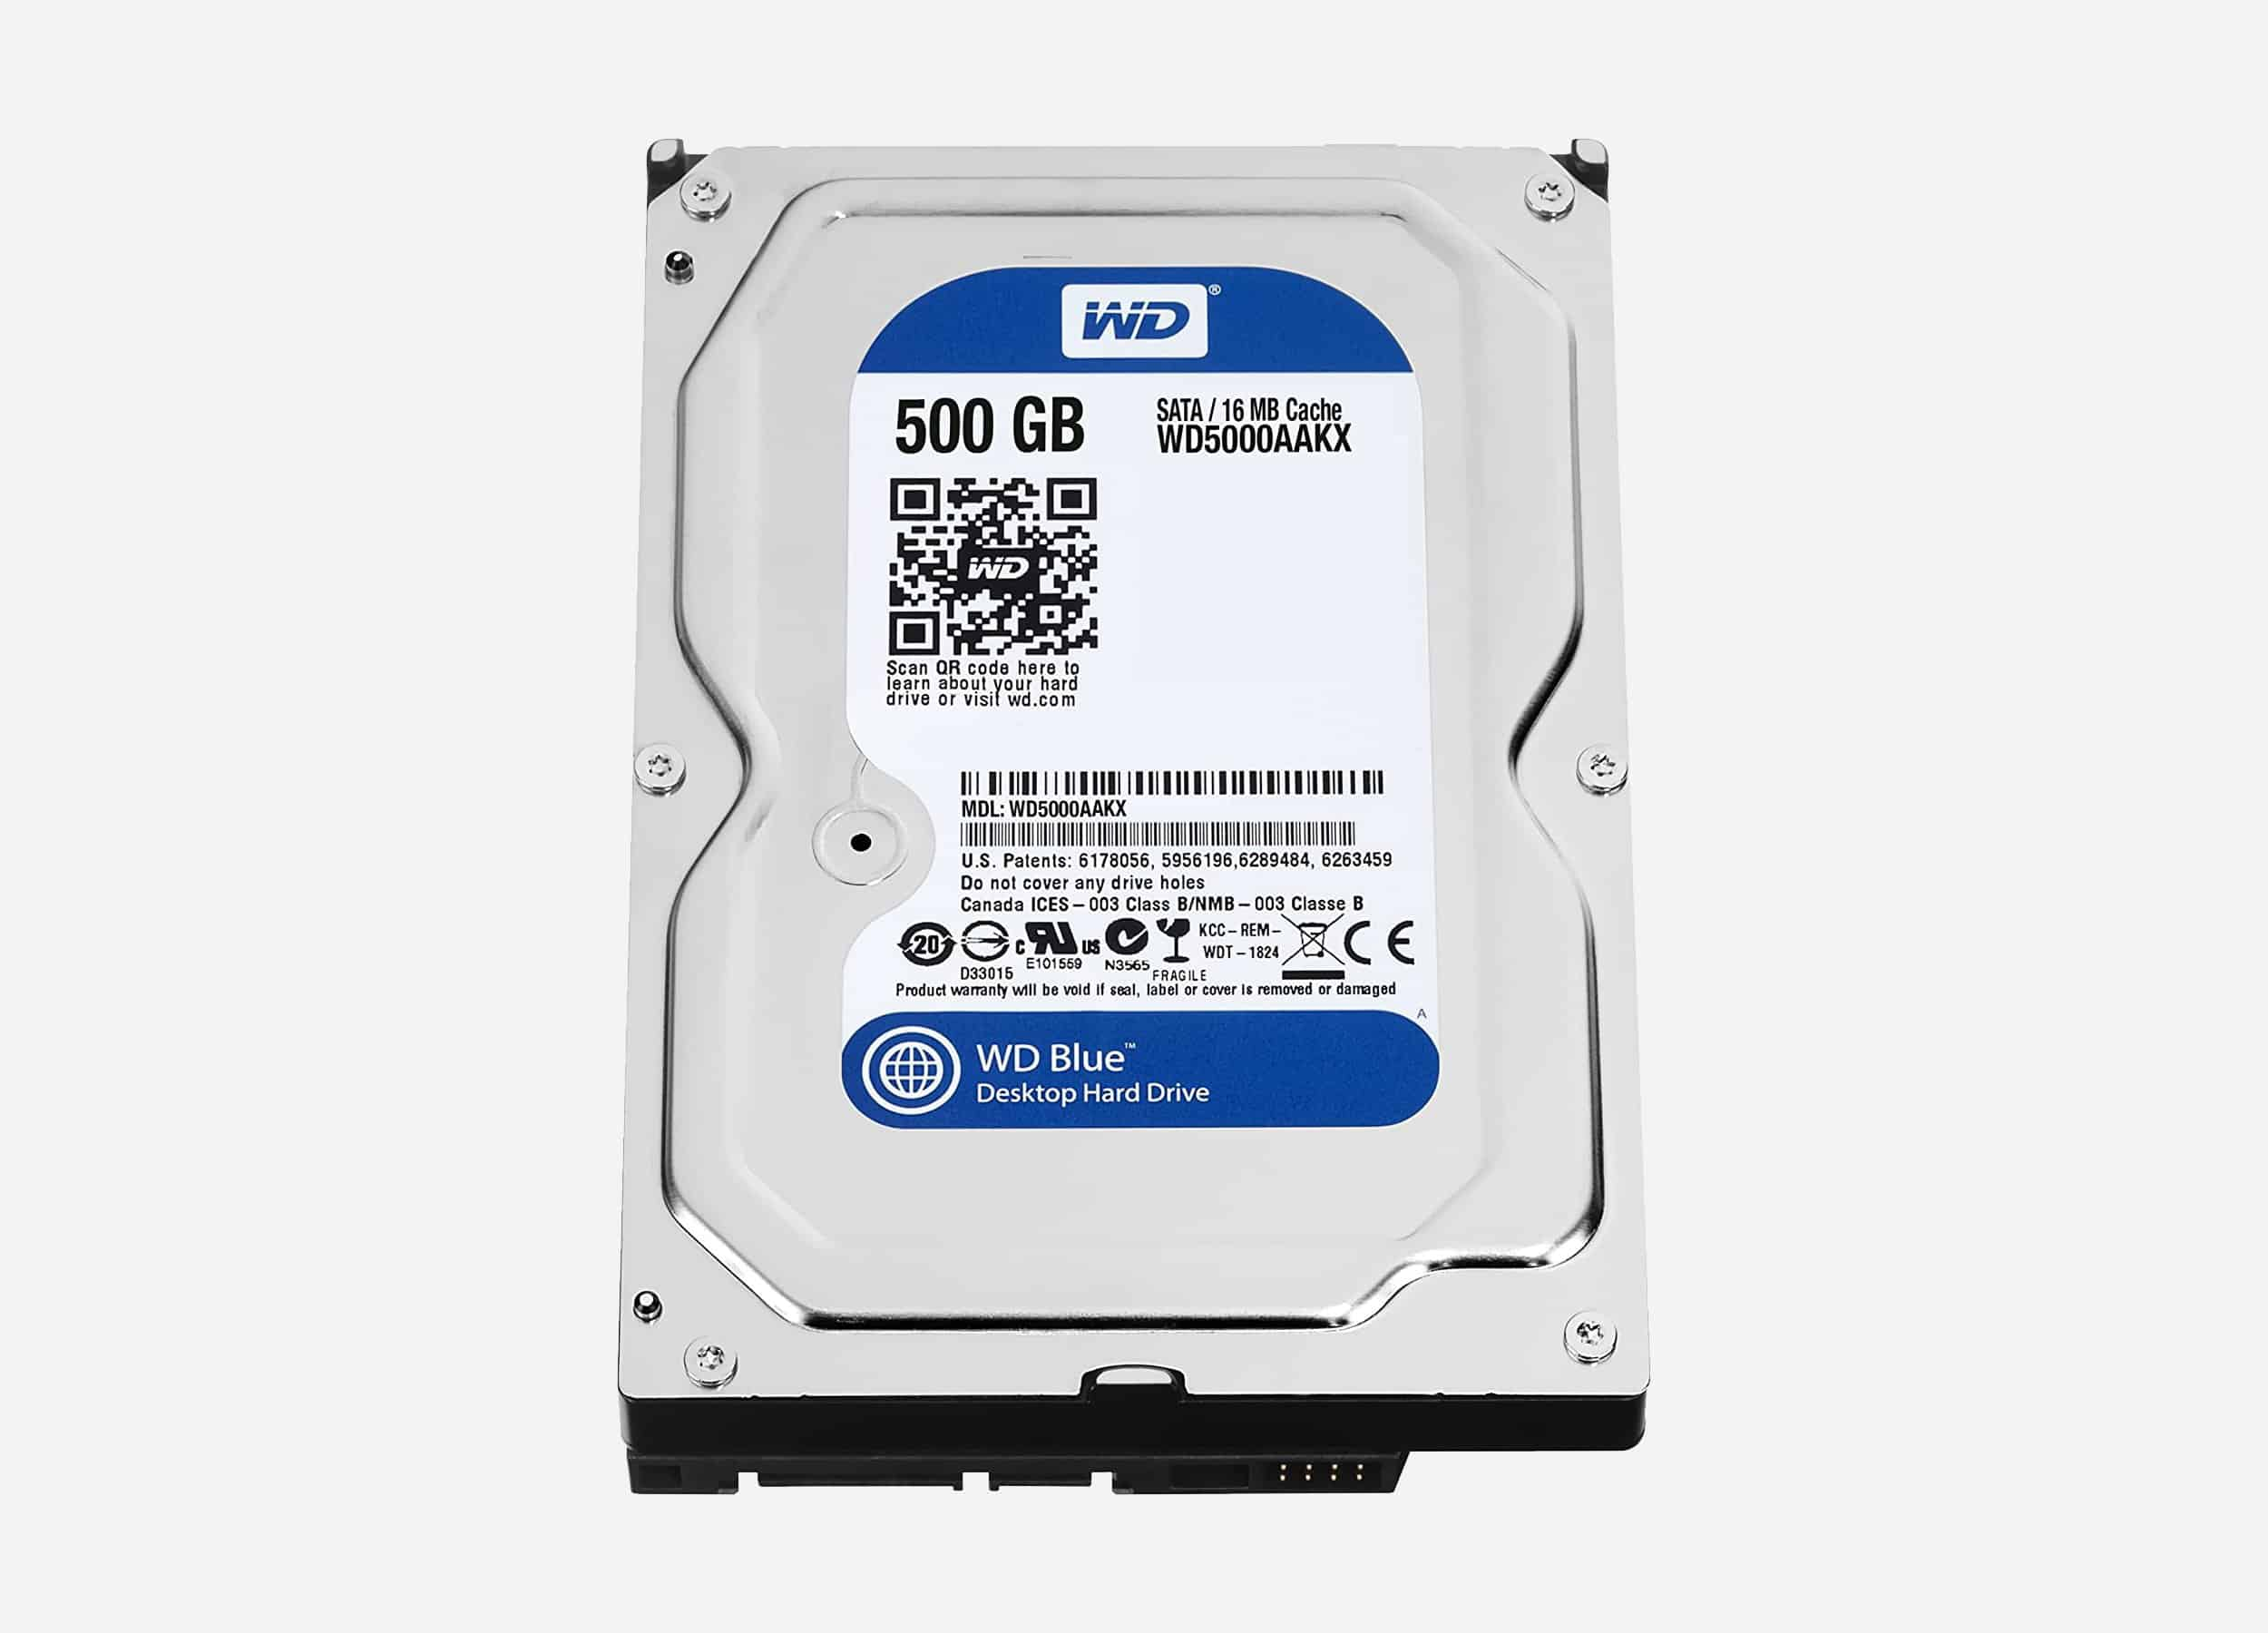 HDD W.D 500GB PC